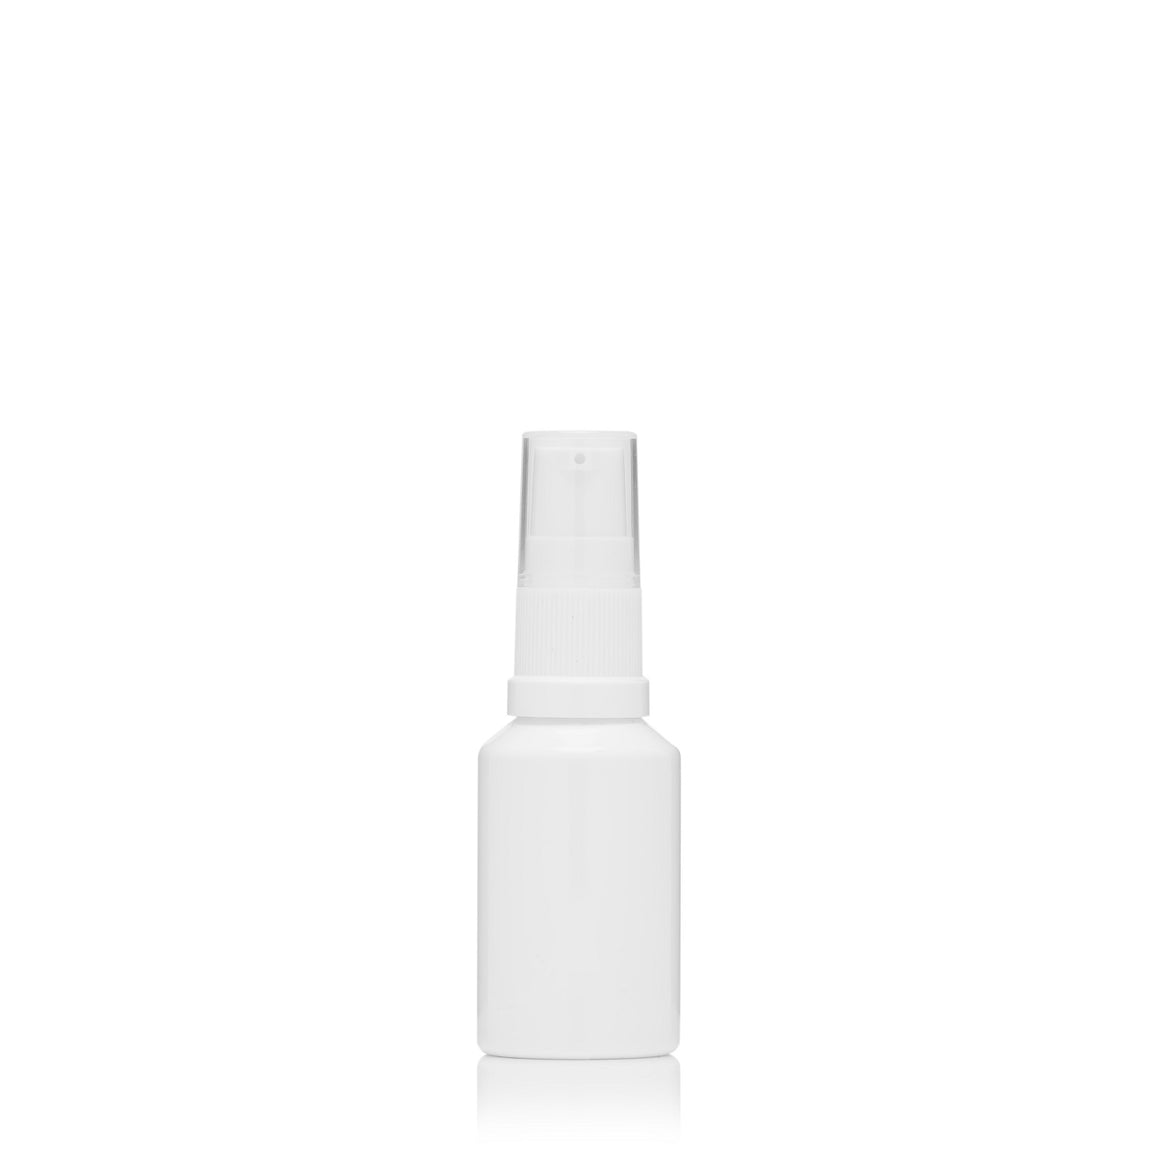 Essentials Blemish Spot Remover - 30ml Pure